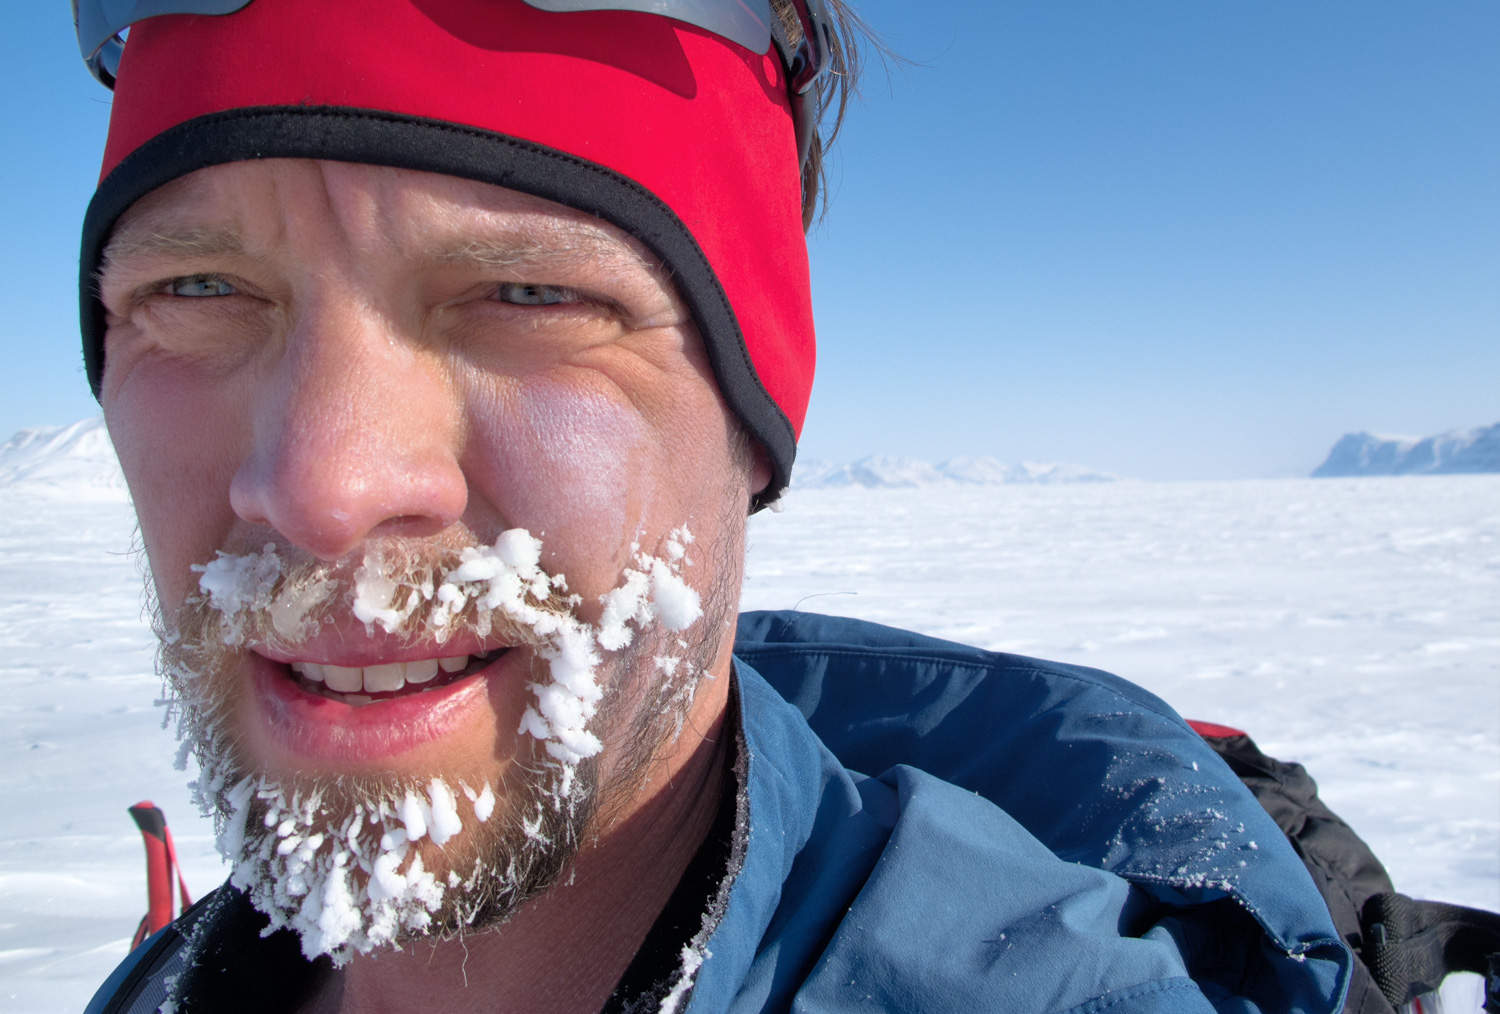 John Huston off the coast of Canada's Ellesmere Island. © John Huston